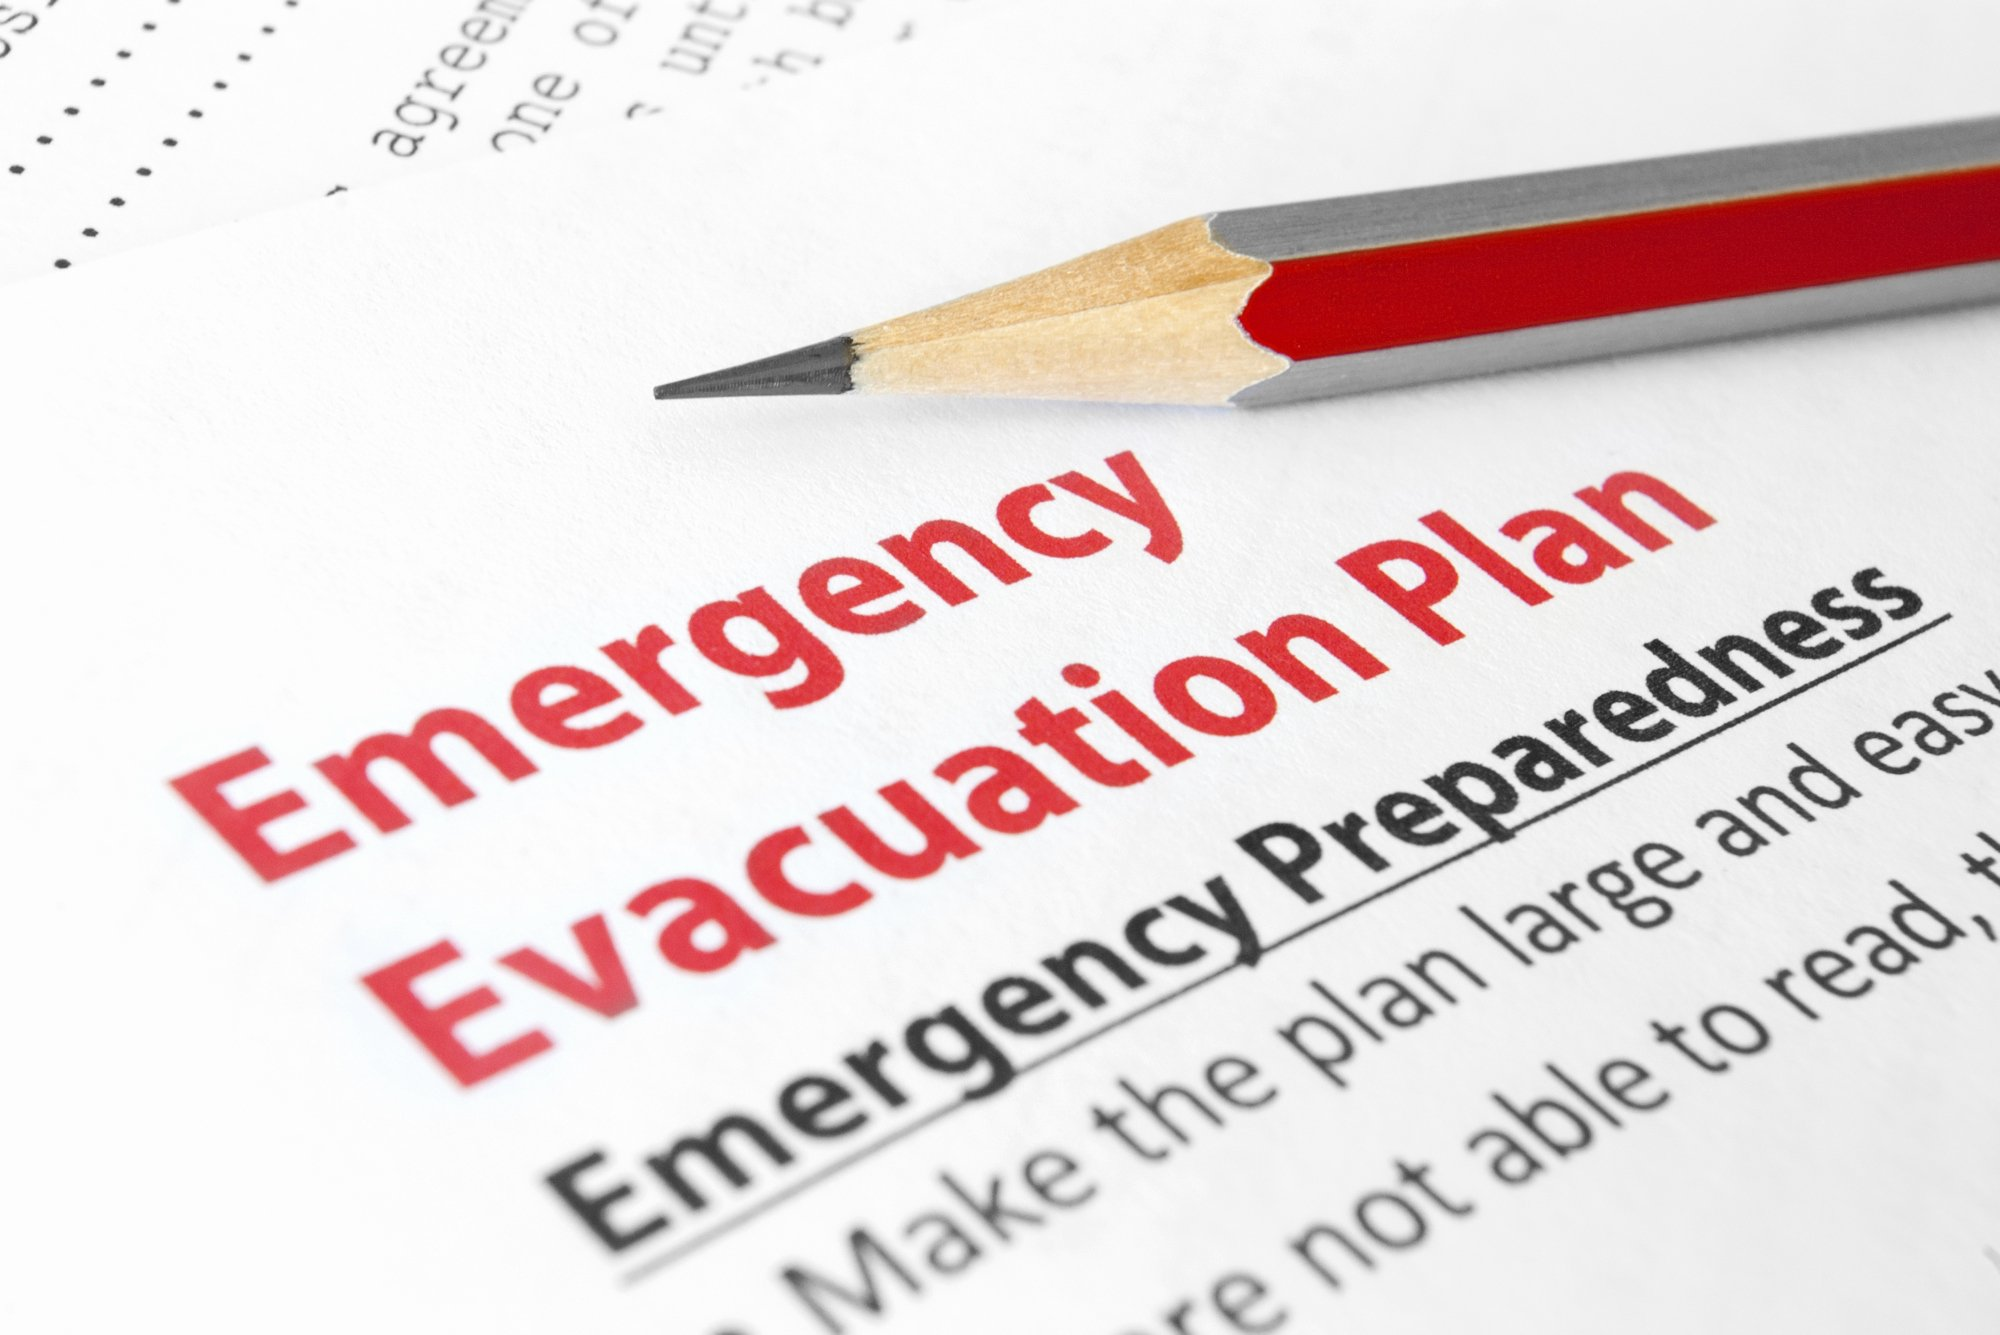 Daycare Emergency Preparedness Plan Template Inspirational Evacuation Planning – 101 Ways to Survive